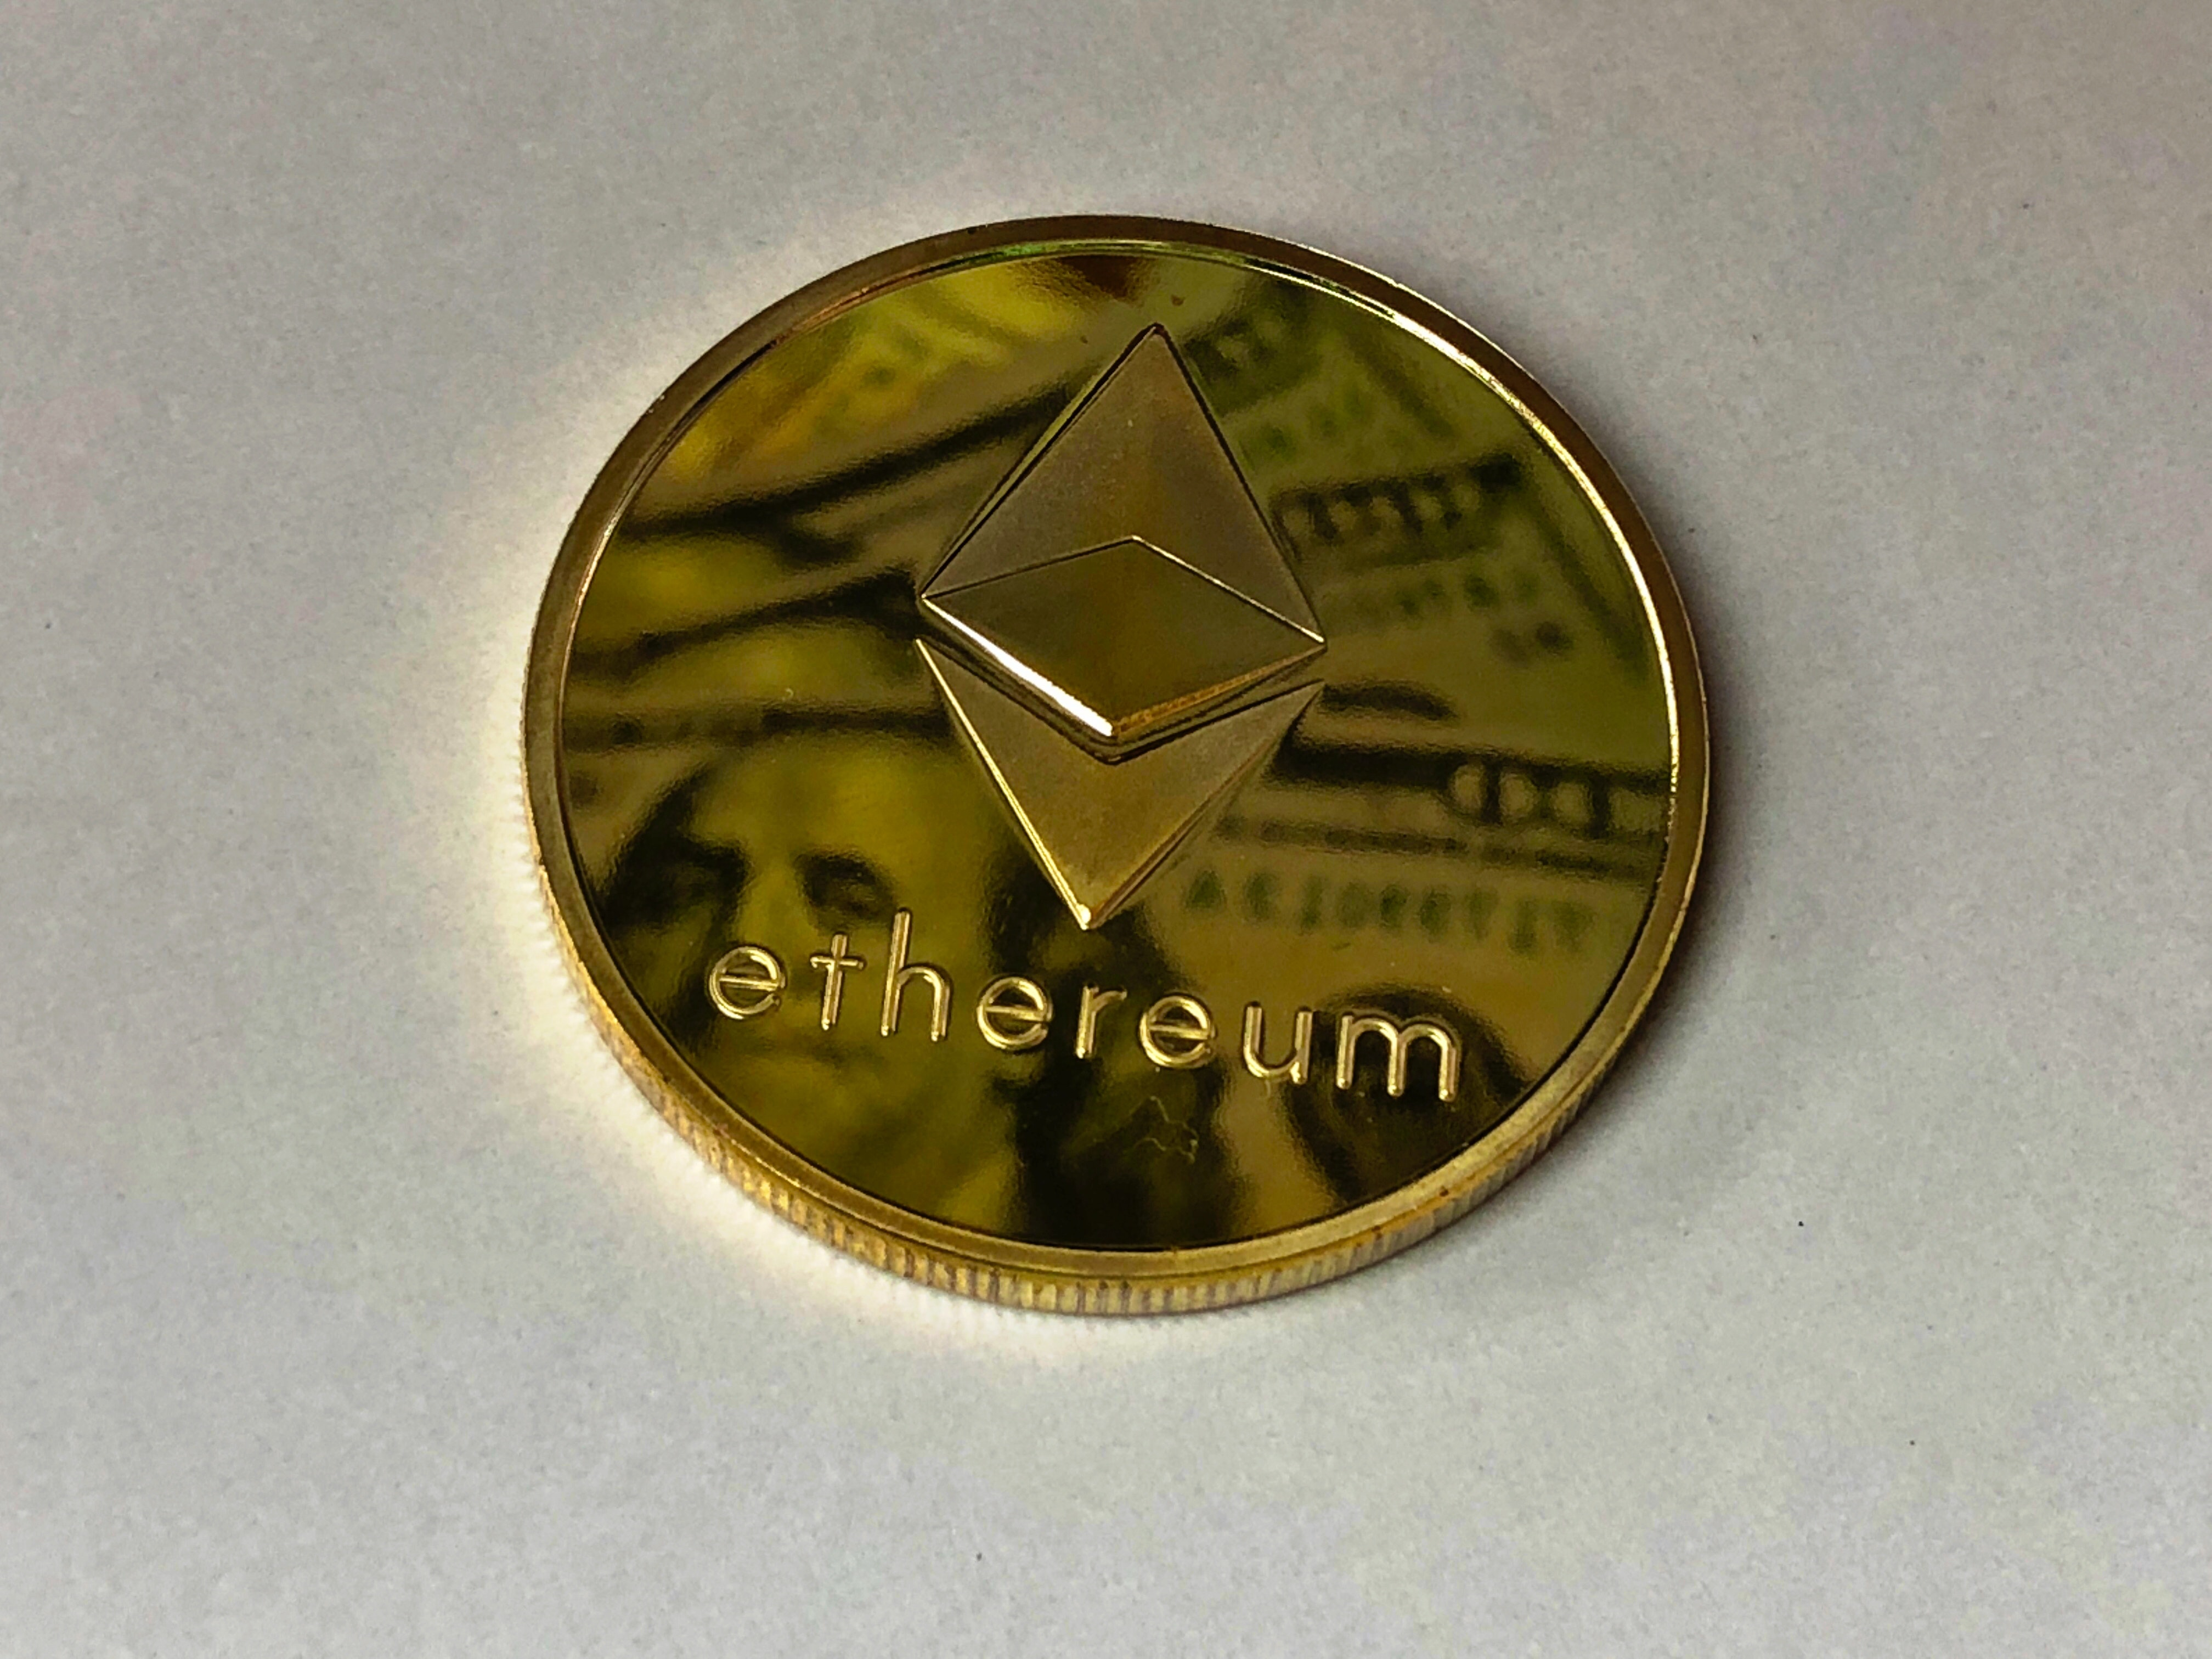 More Than 5% Of The Ethereum Supply Now Locked In ETH 2.0